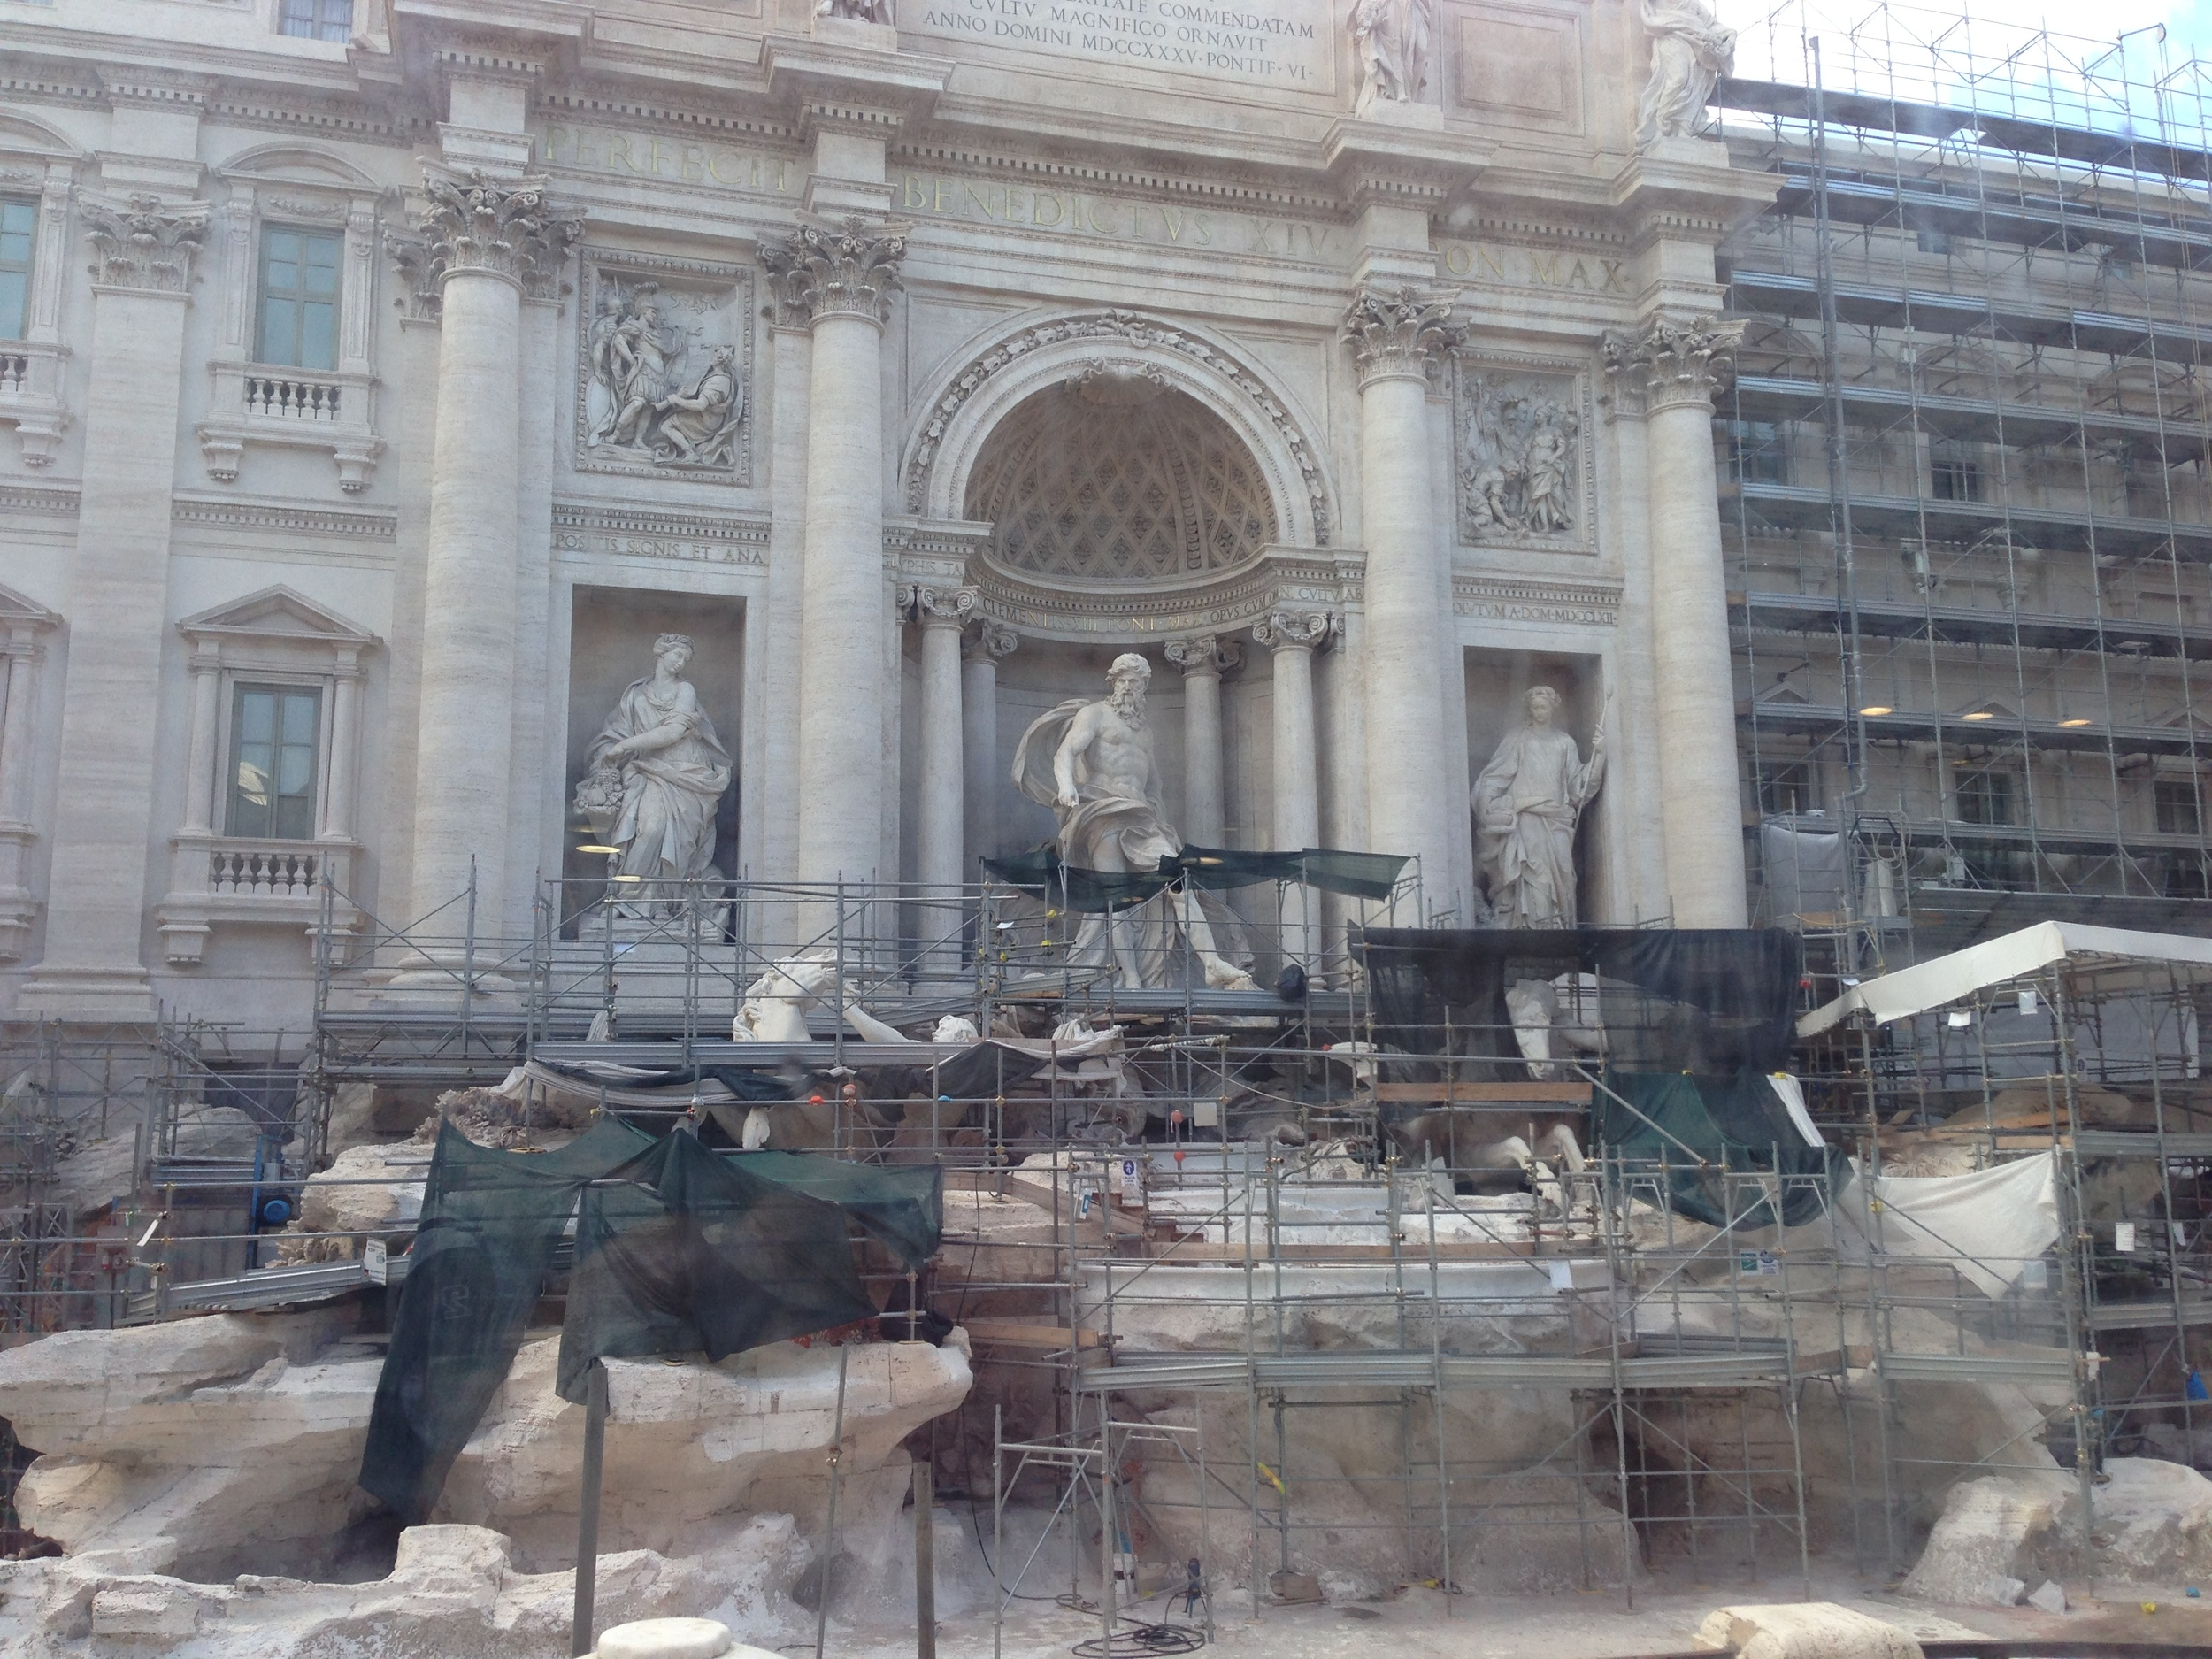 Unfortunately the Trevi Fountain was under renovation...*sigh*  Instead, you could toss you coin into a small puddle situated in front of the plexiglass walls.  We threw it in anyway, wishing for a chance to return some day.